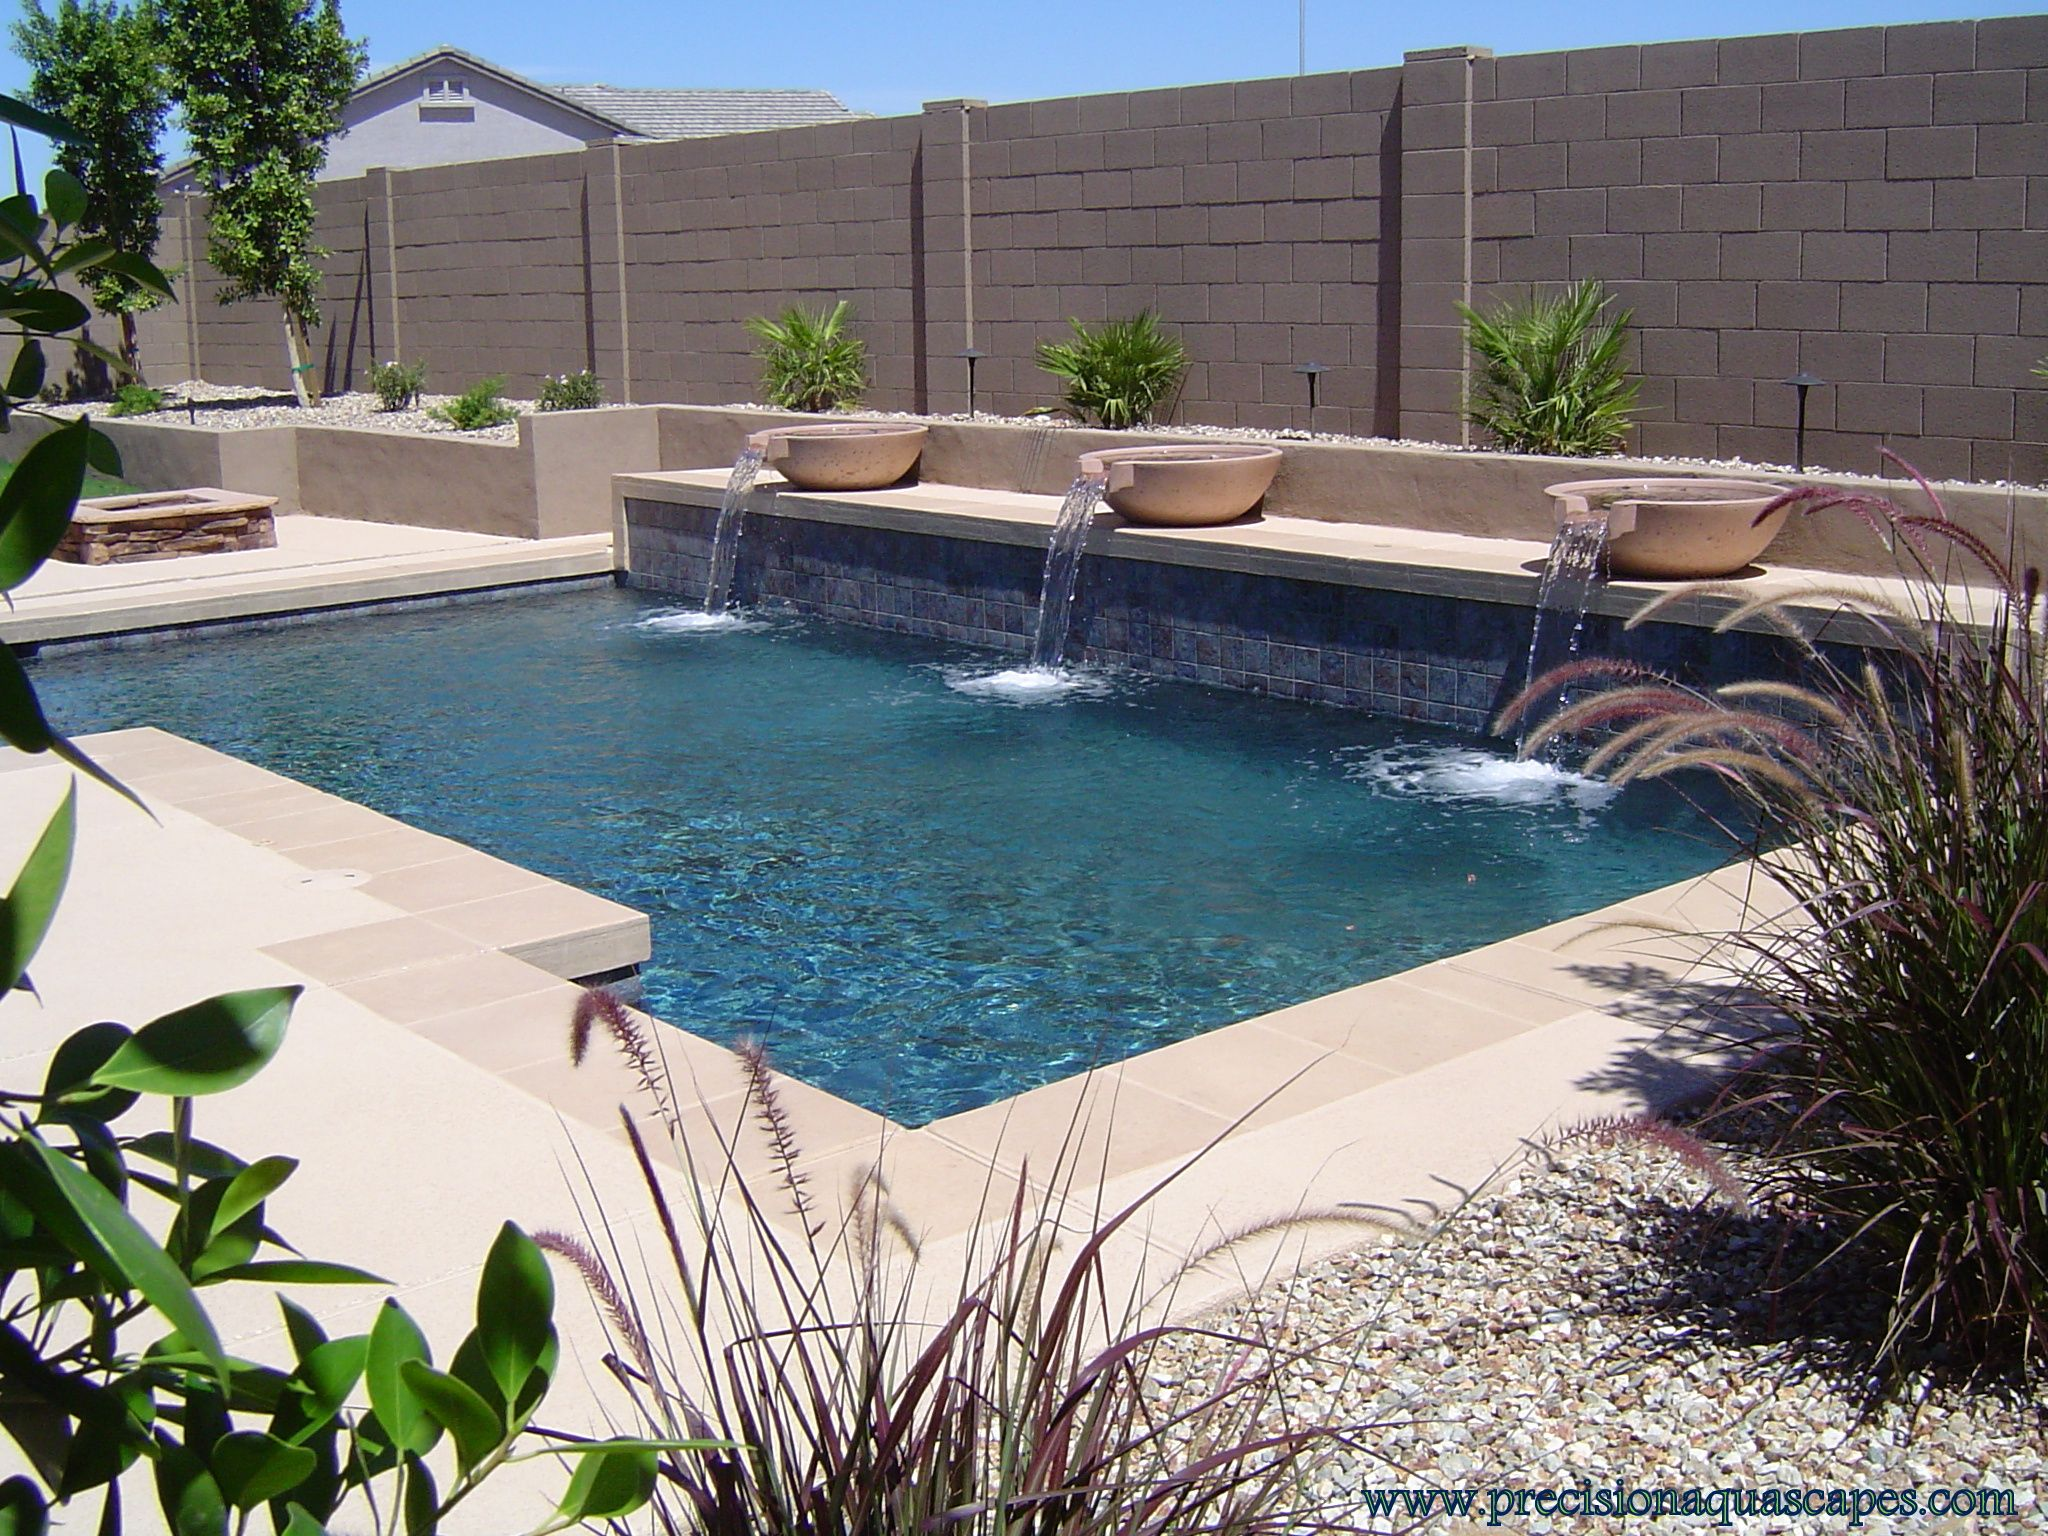 Geometric With Raised Wall And Woks Swimming Pool Pictures Arizona Pool Design Geometric Pool